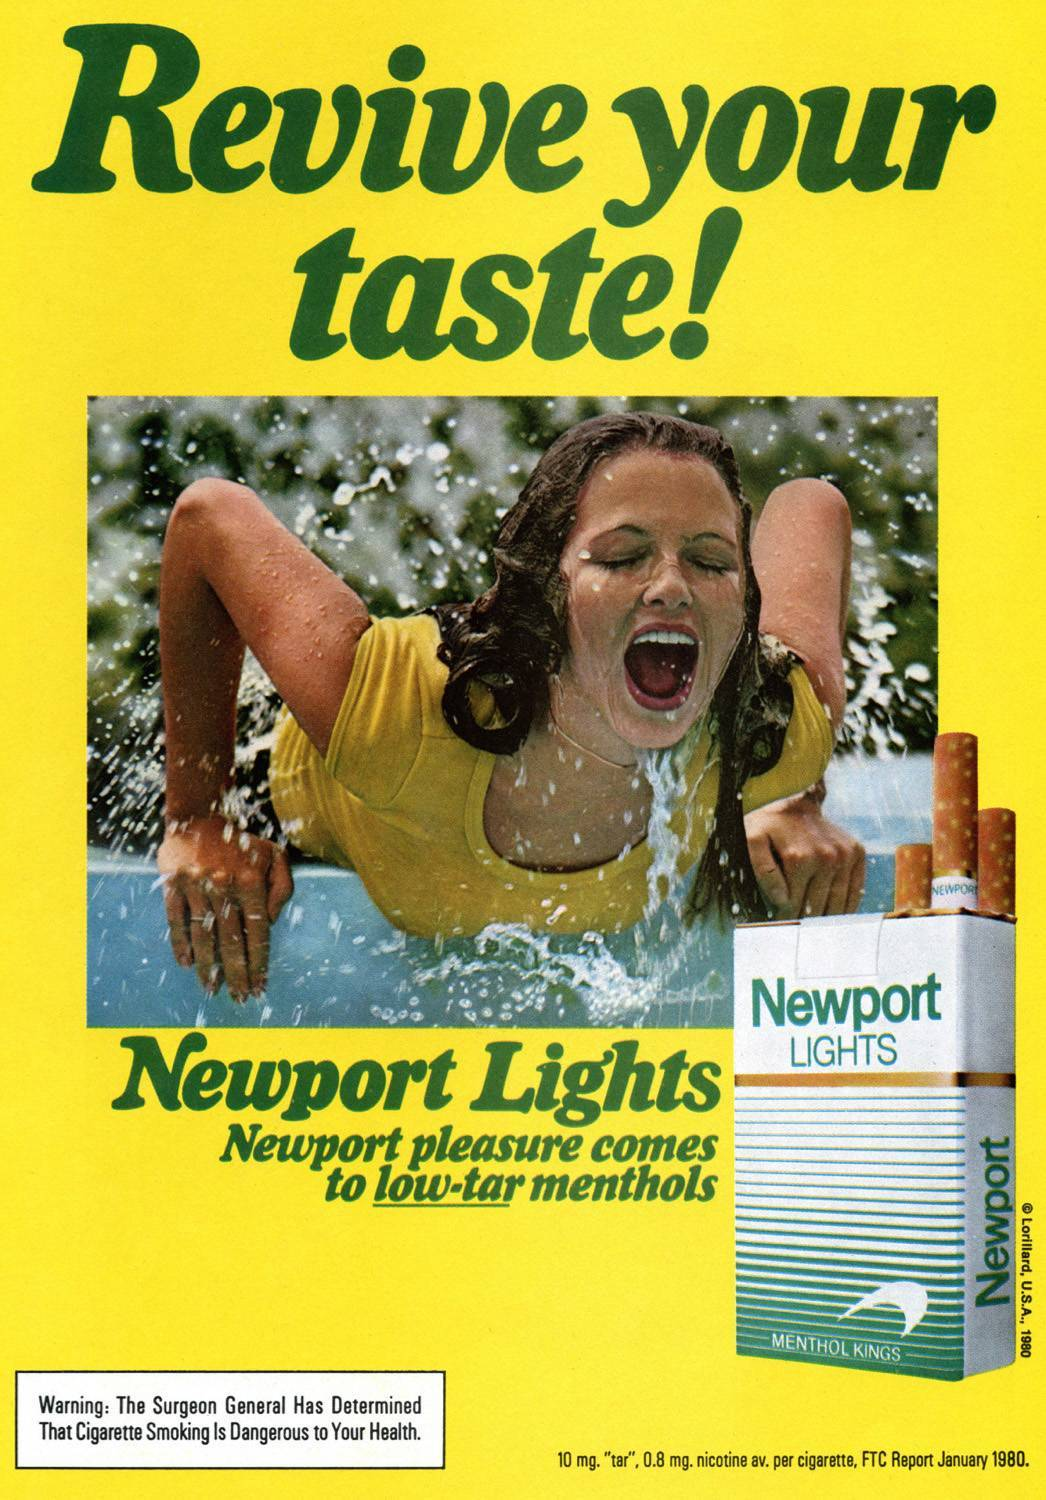 Newport Lights ad yellow t-shirt